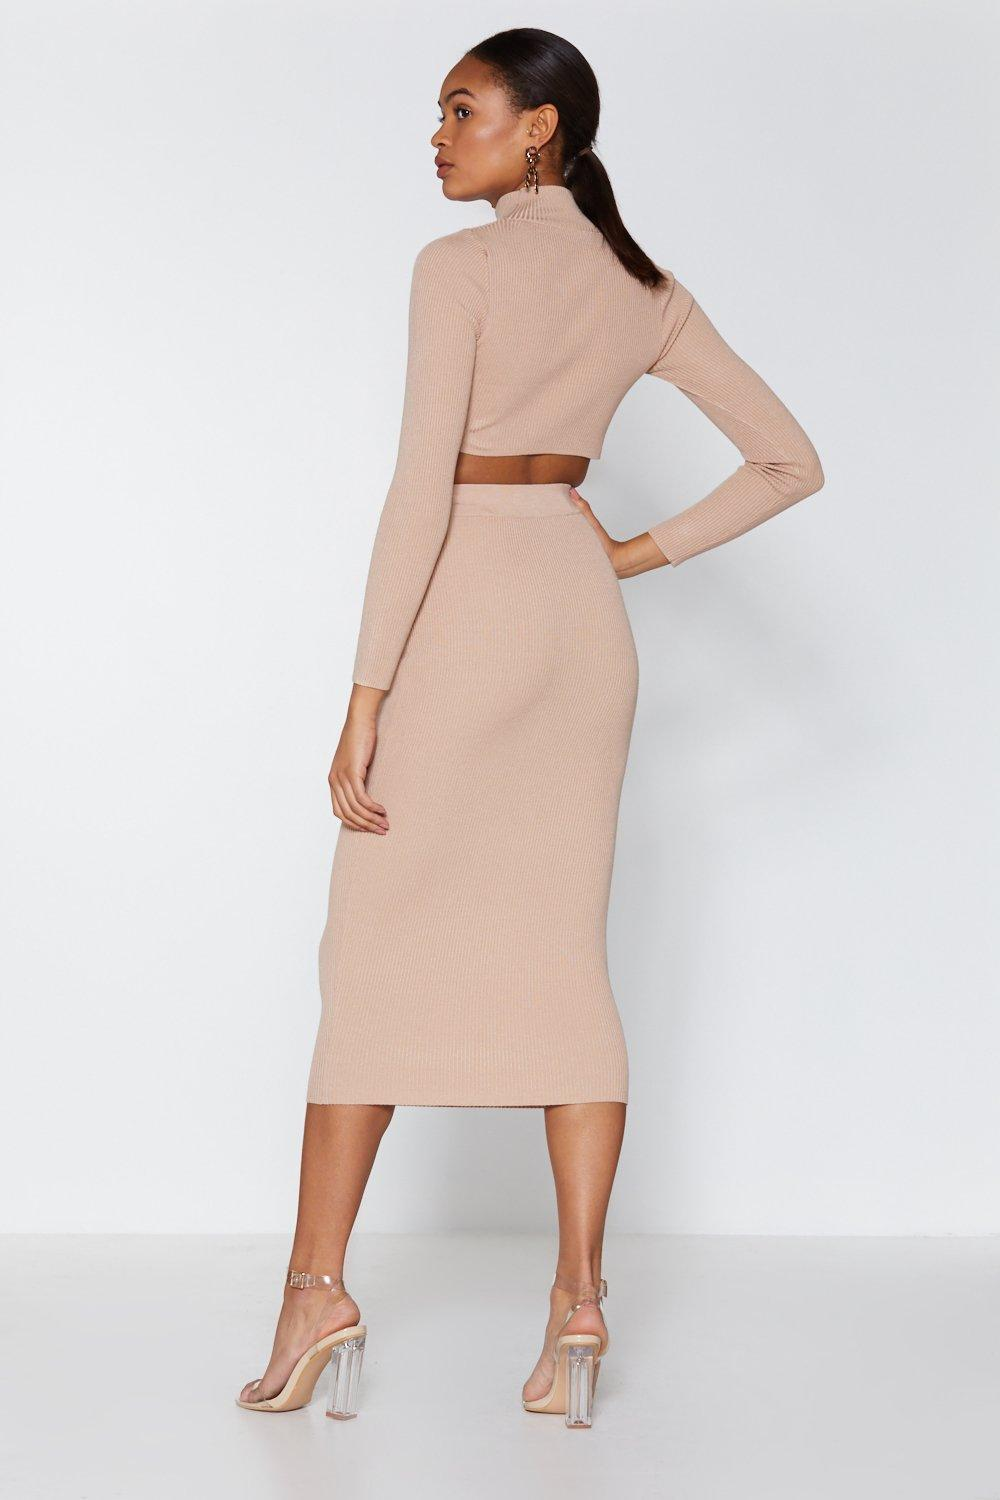 5a542e368bfc My High Neck My Back Top and Midi Skirt | Shop Clothes at Nasty Gal!